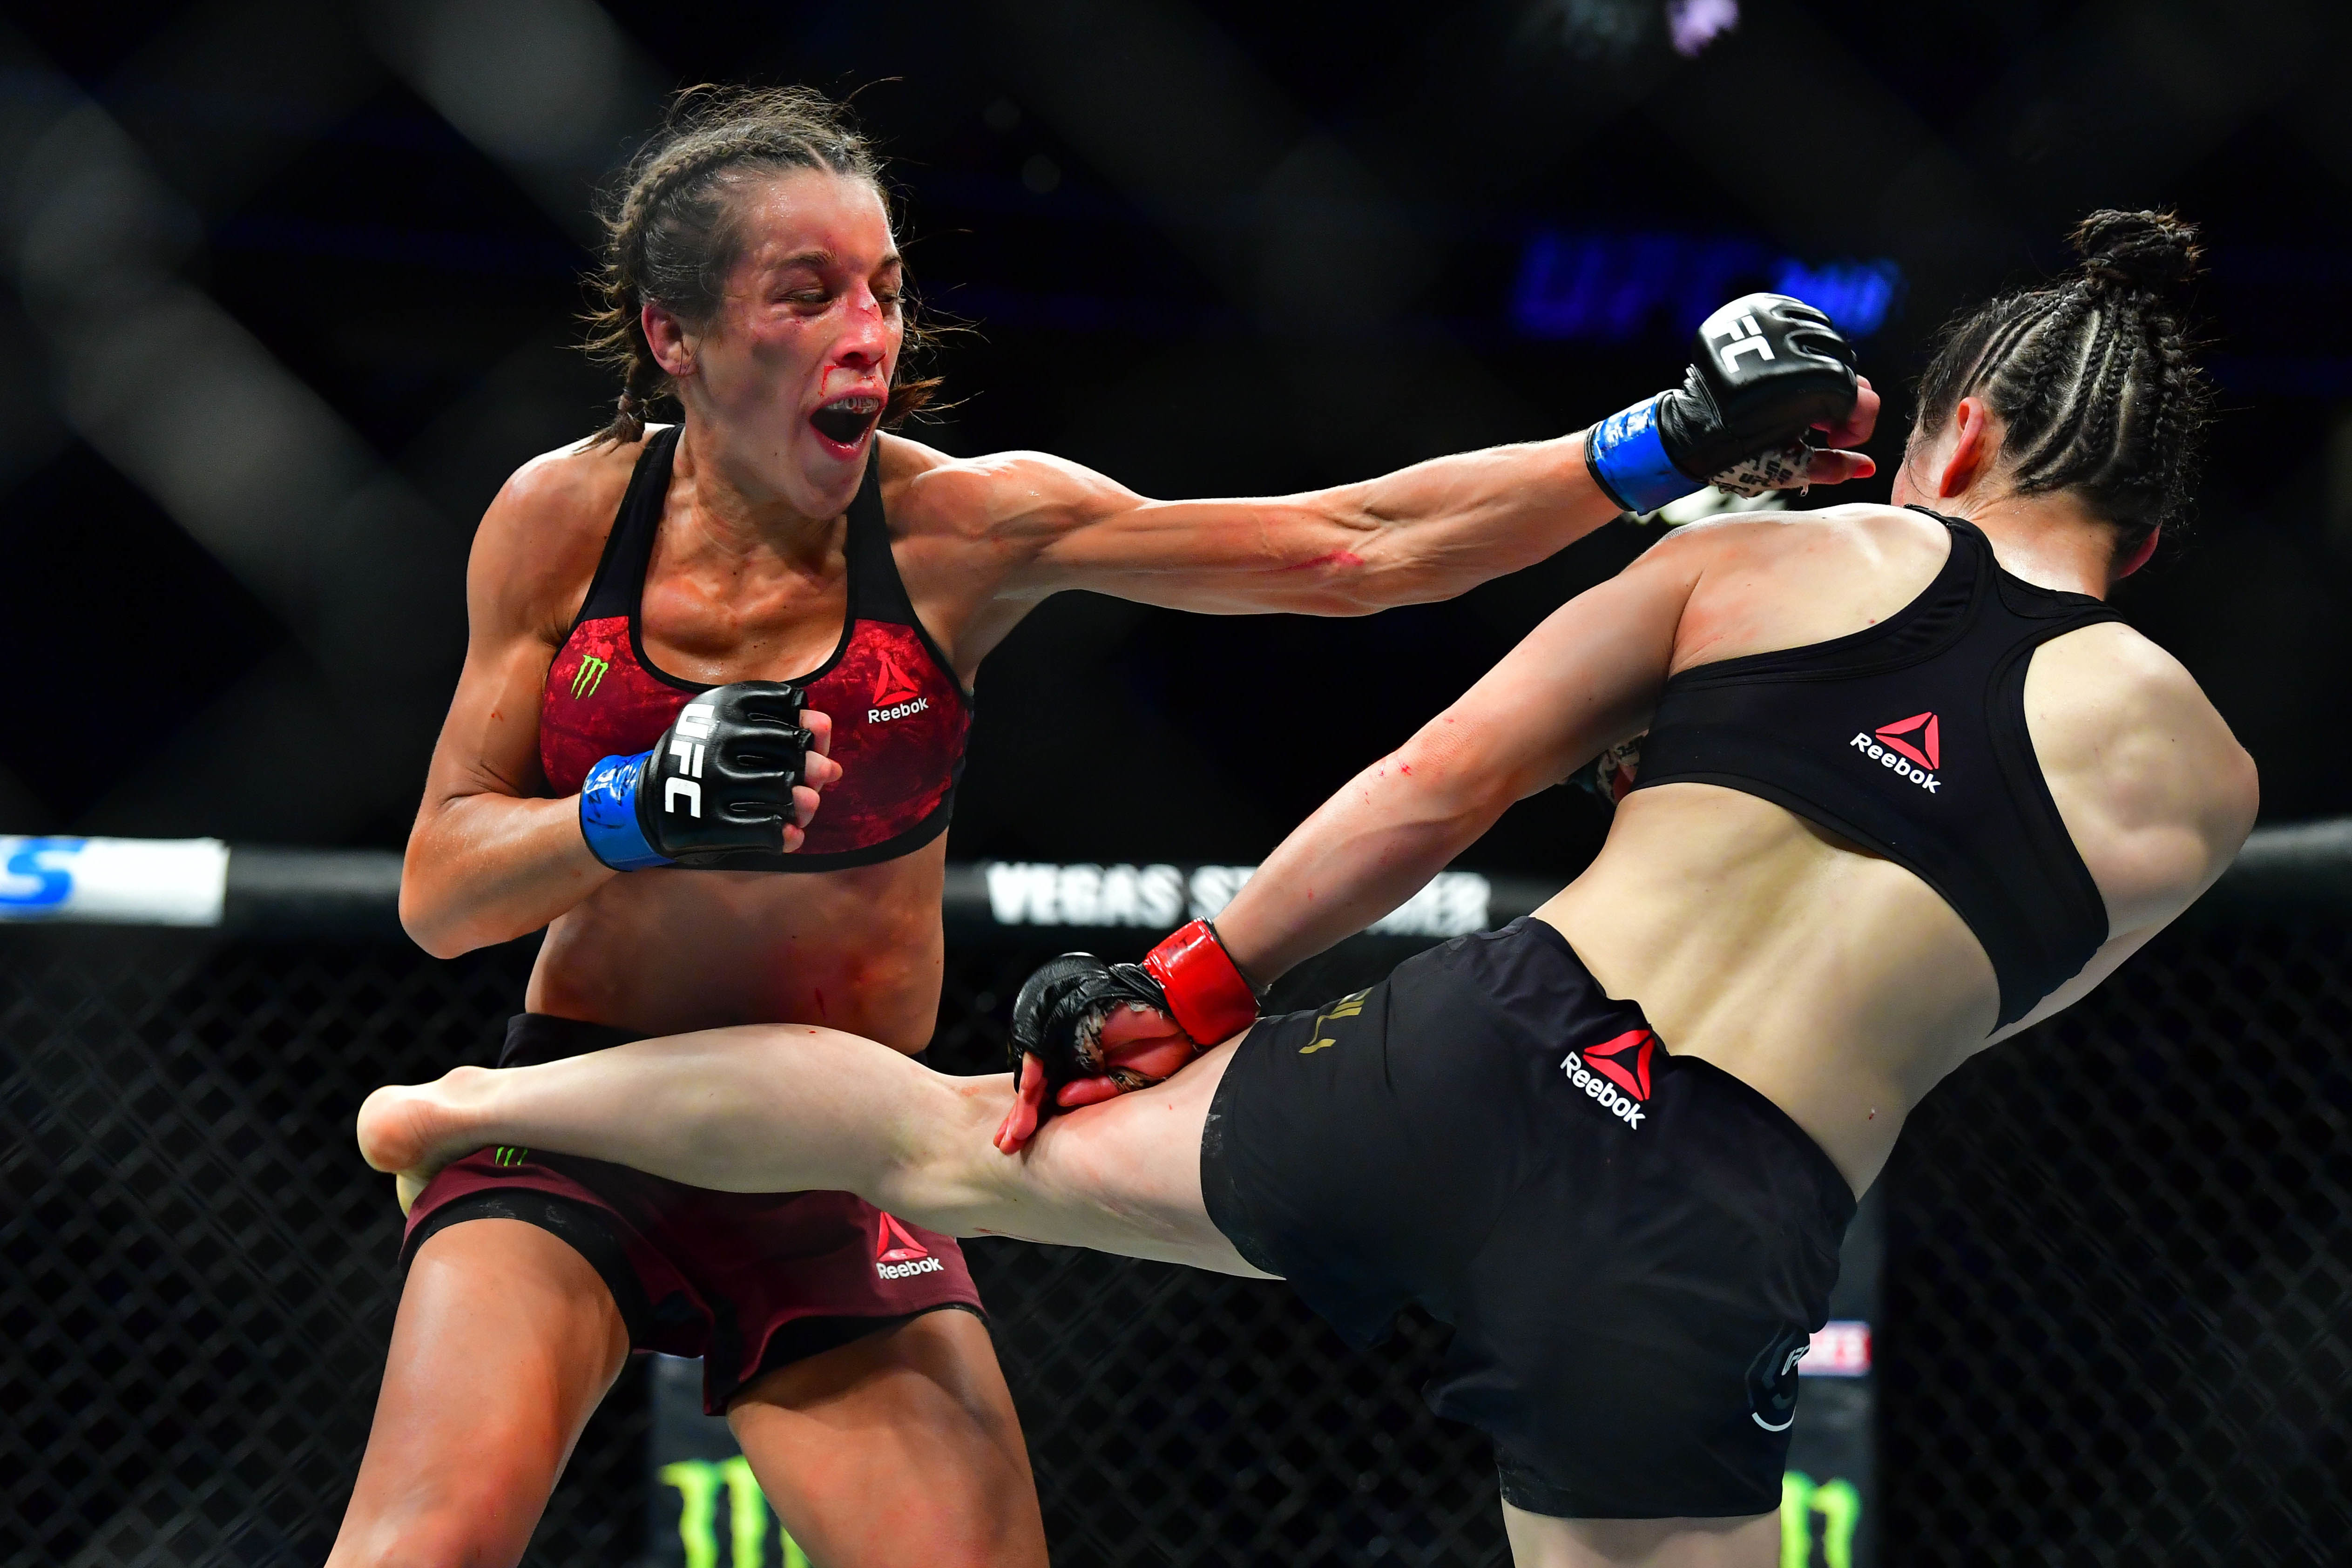 Joanna Jedrzejczyk Shares Recovery 16 Days After Brutal UFC Battle